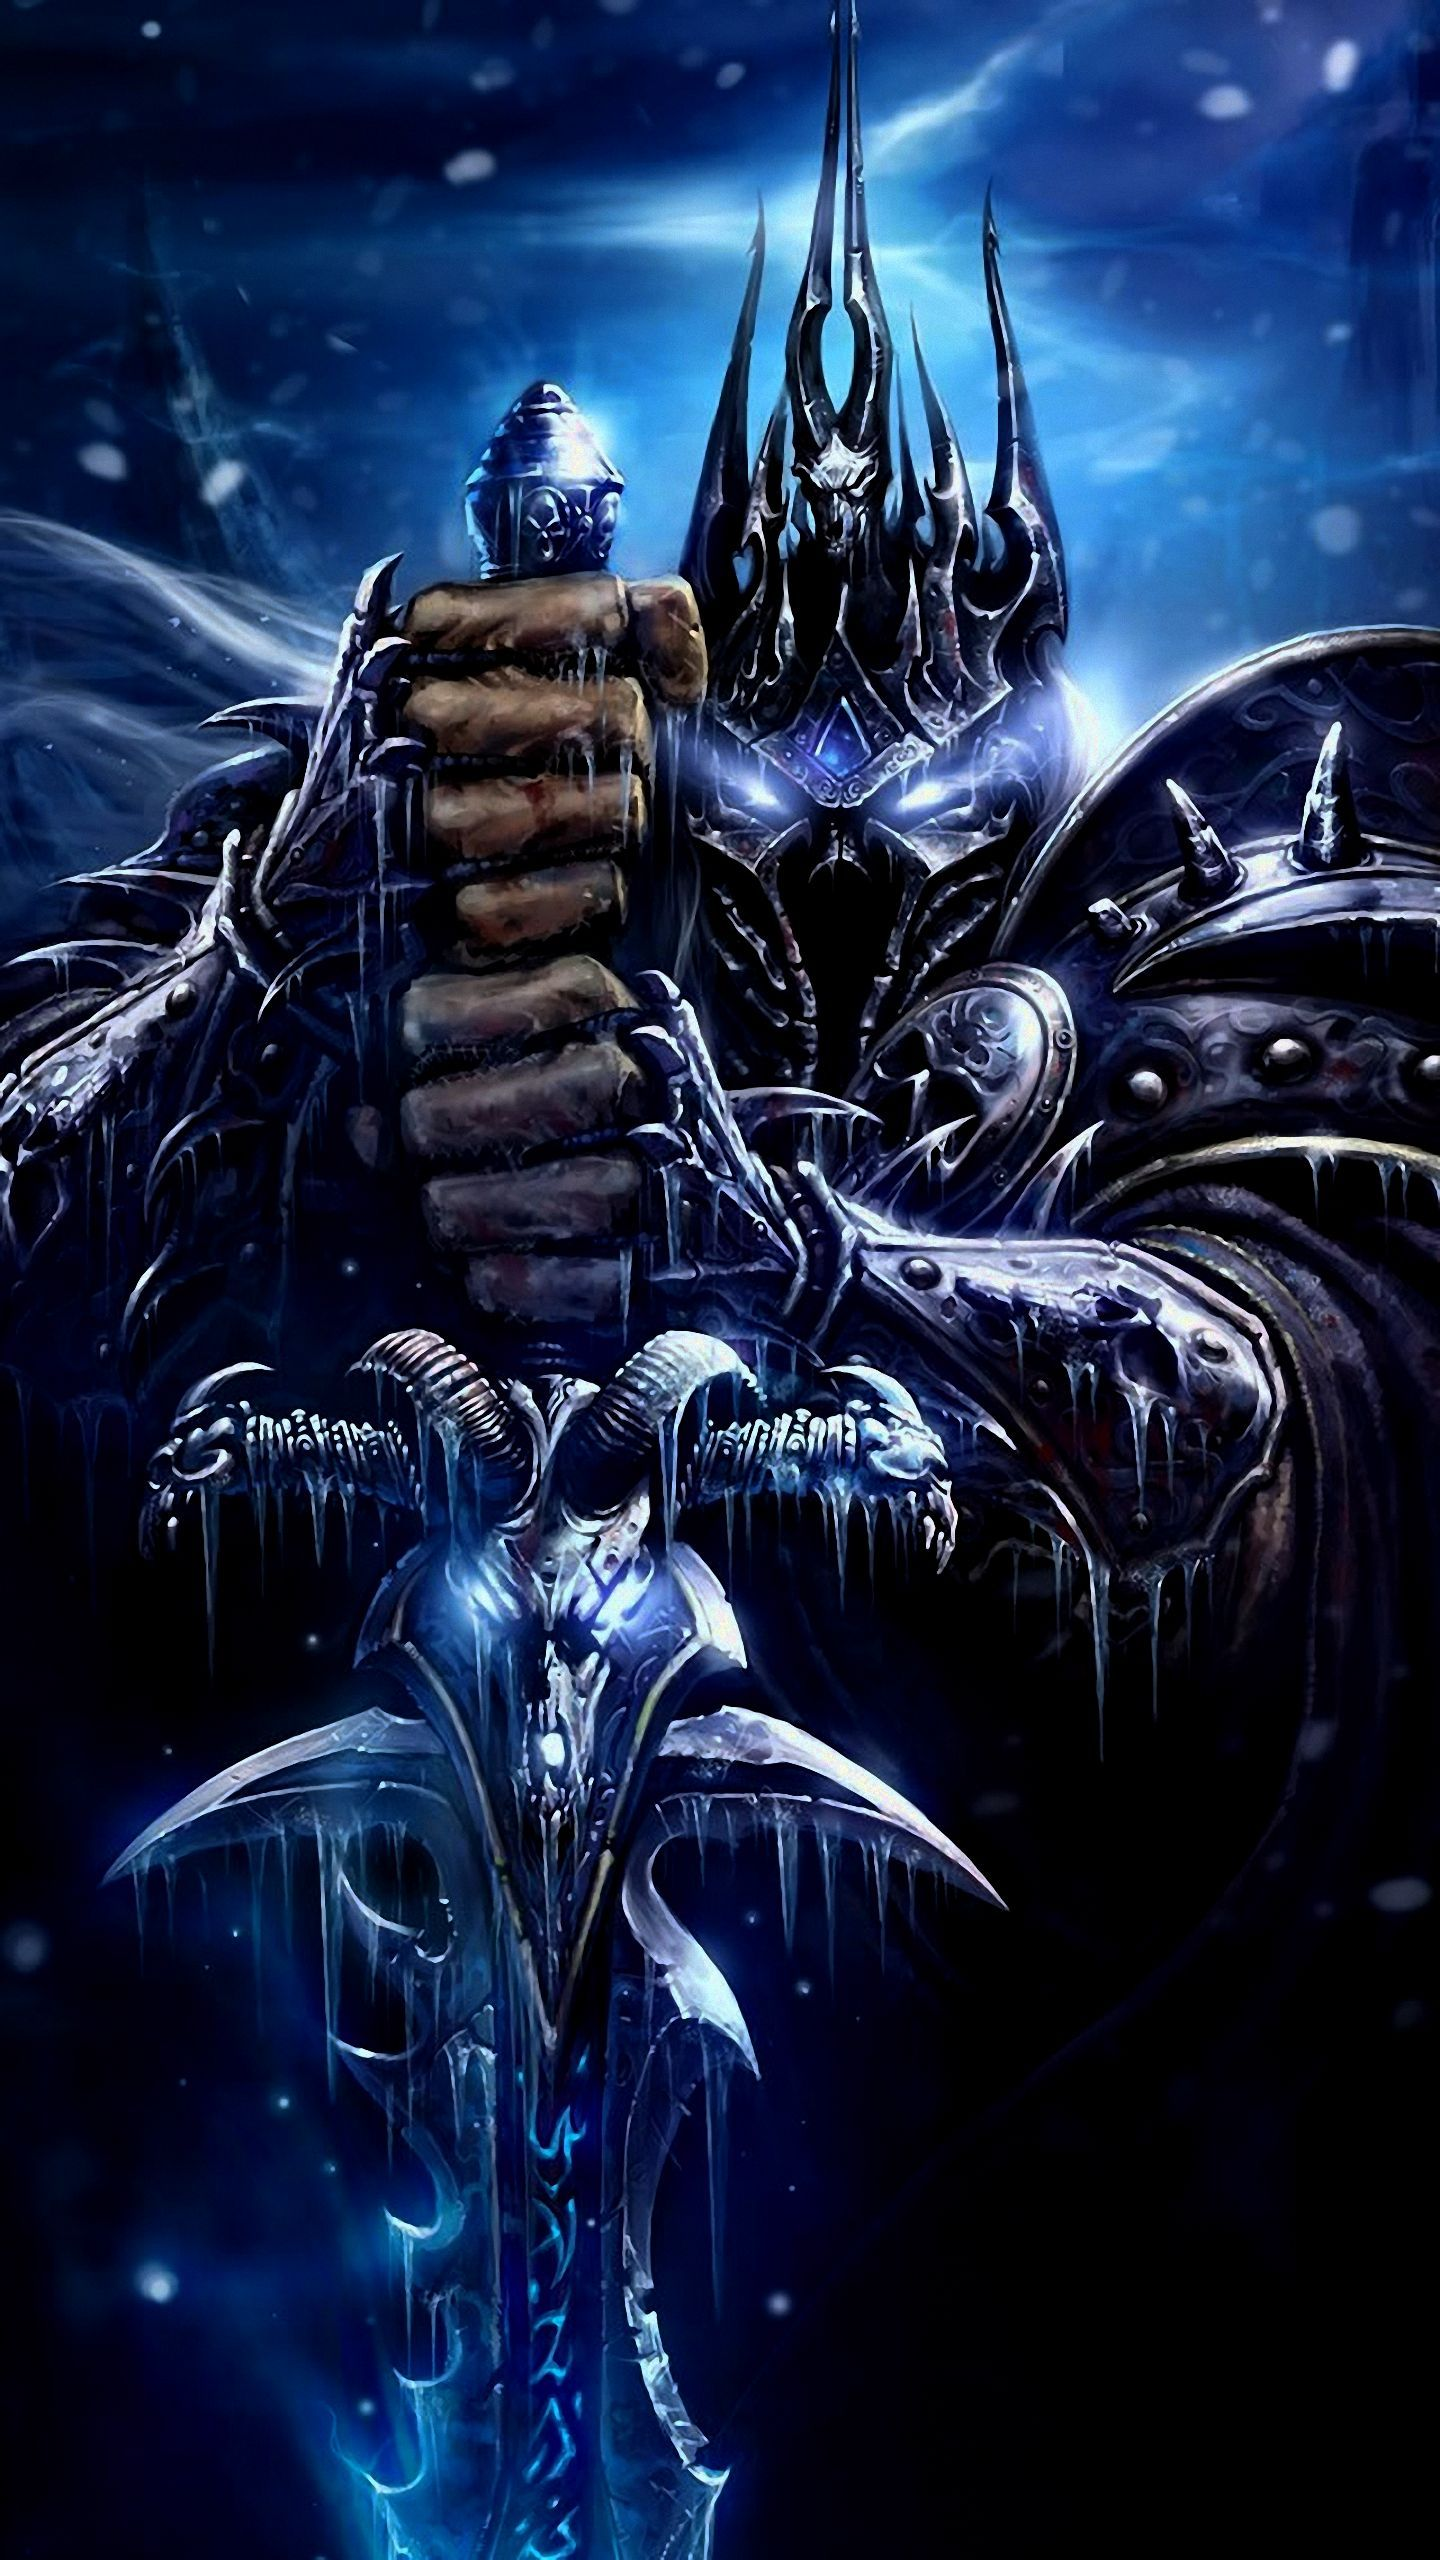 Hd wallpapers for phone - Mobile Phone X World Of Warcraft Wallpapers Hd Desktop Hd Wallpapers Pinterest Wallpaper Warcraft Art And Death Knight